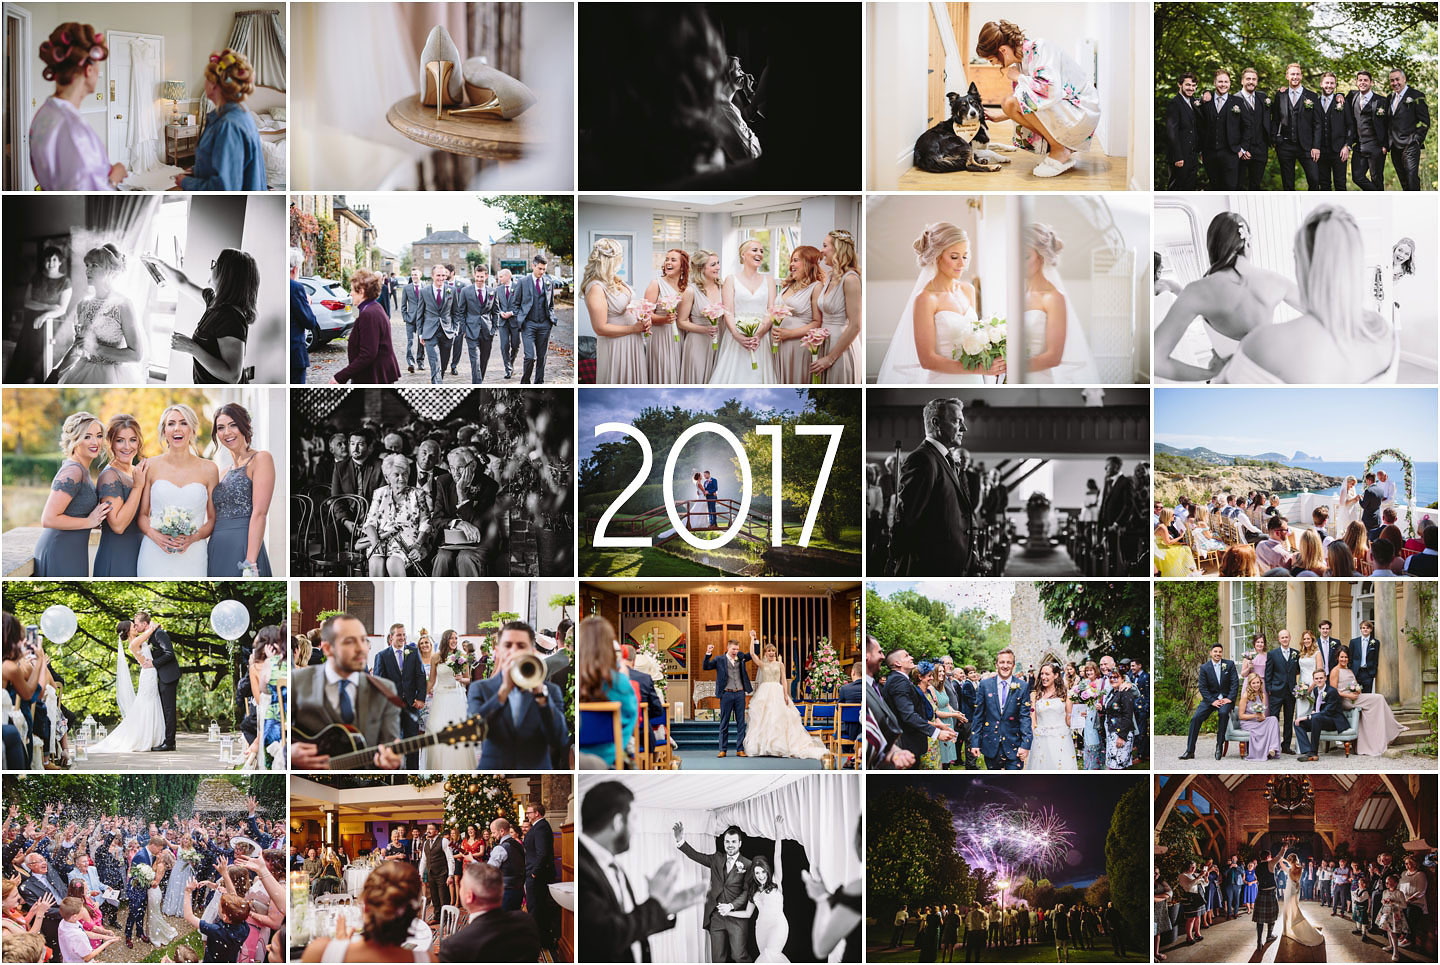 Best UK wedding photographers 2017, Amazing Yorkshire Wedding Photographer, Beautiful Yorkshire Wedding Photography, Best Wedding Photography 2017, Wedding Photographer Barnaby Aldrick, UK Wedding Photography, Ibiza Wedding Photography.